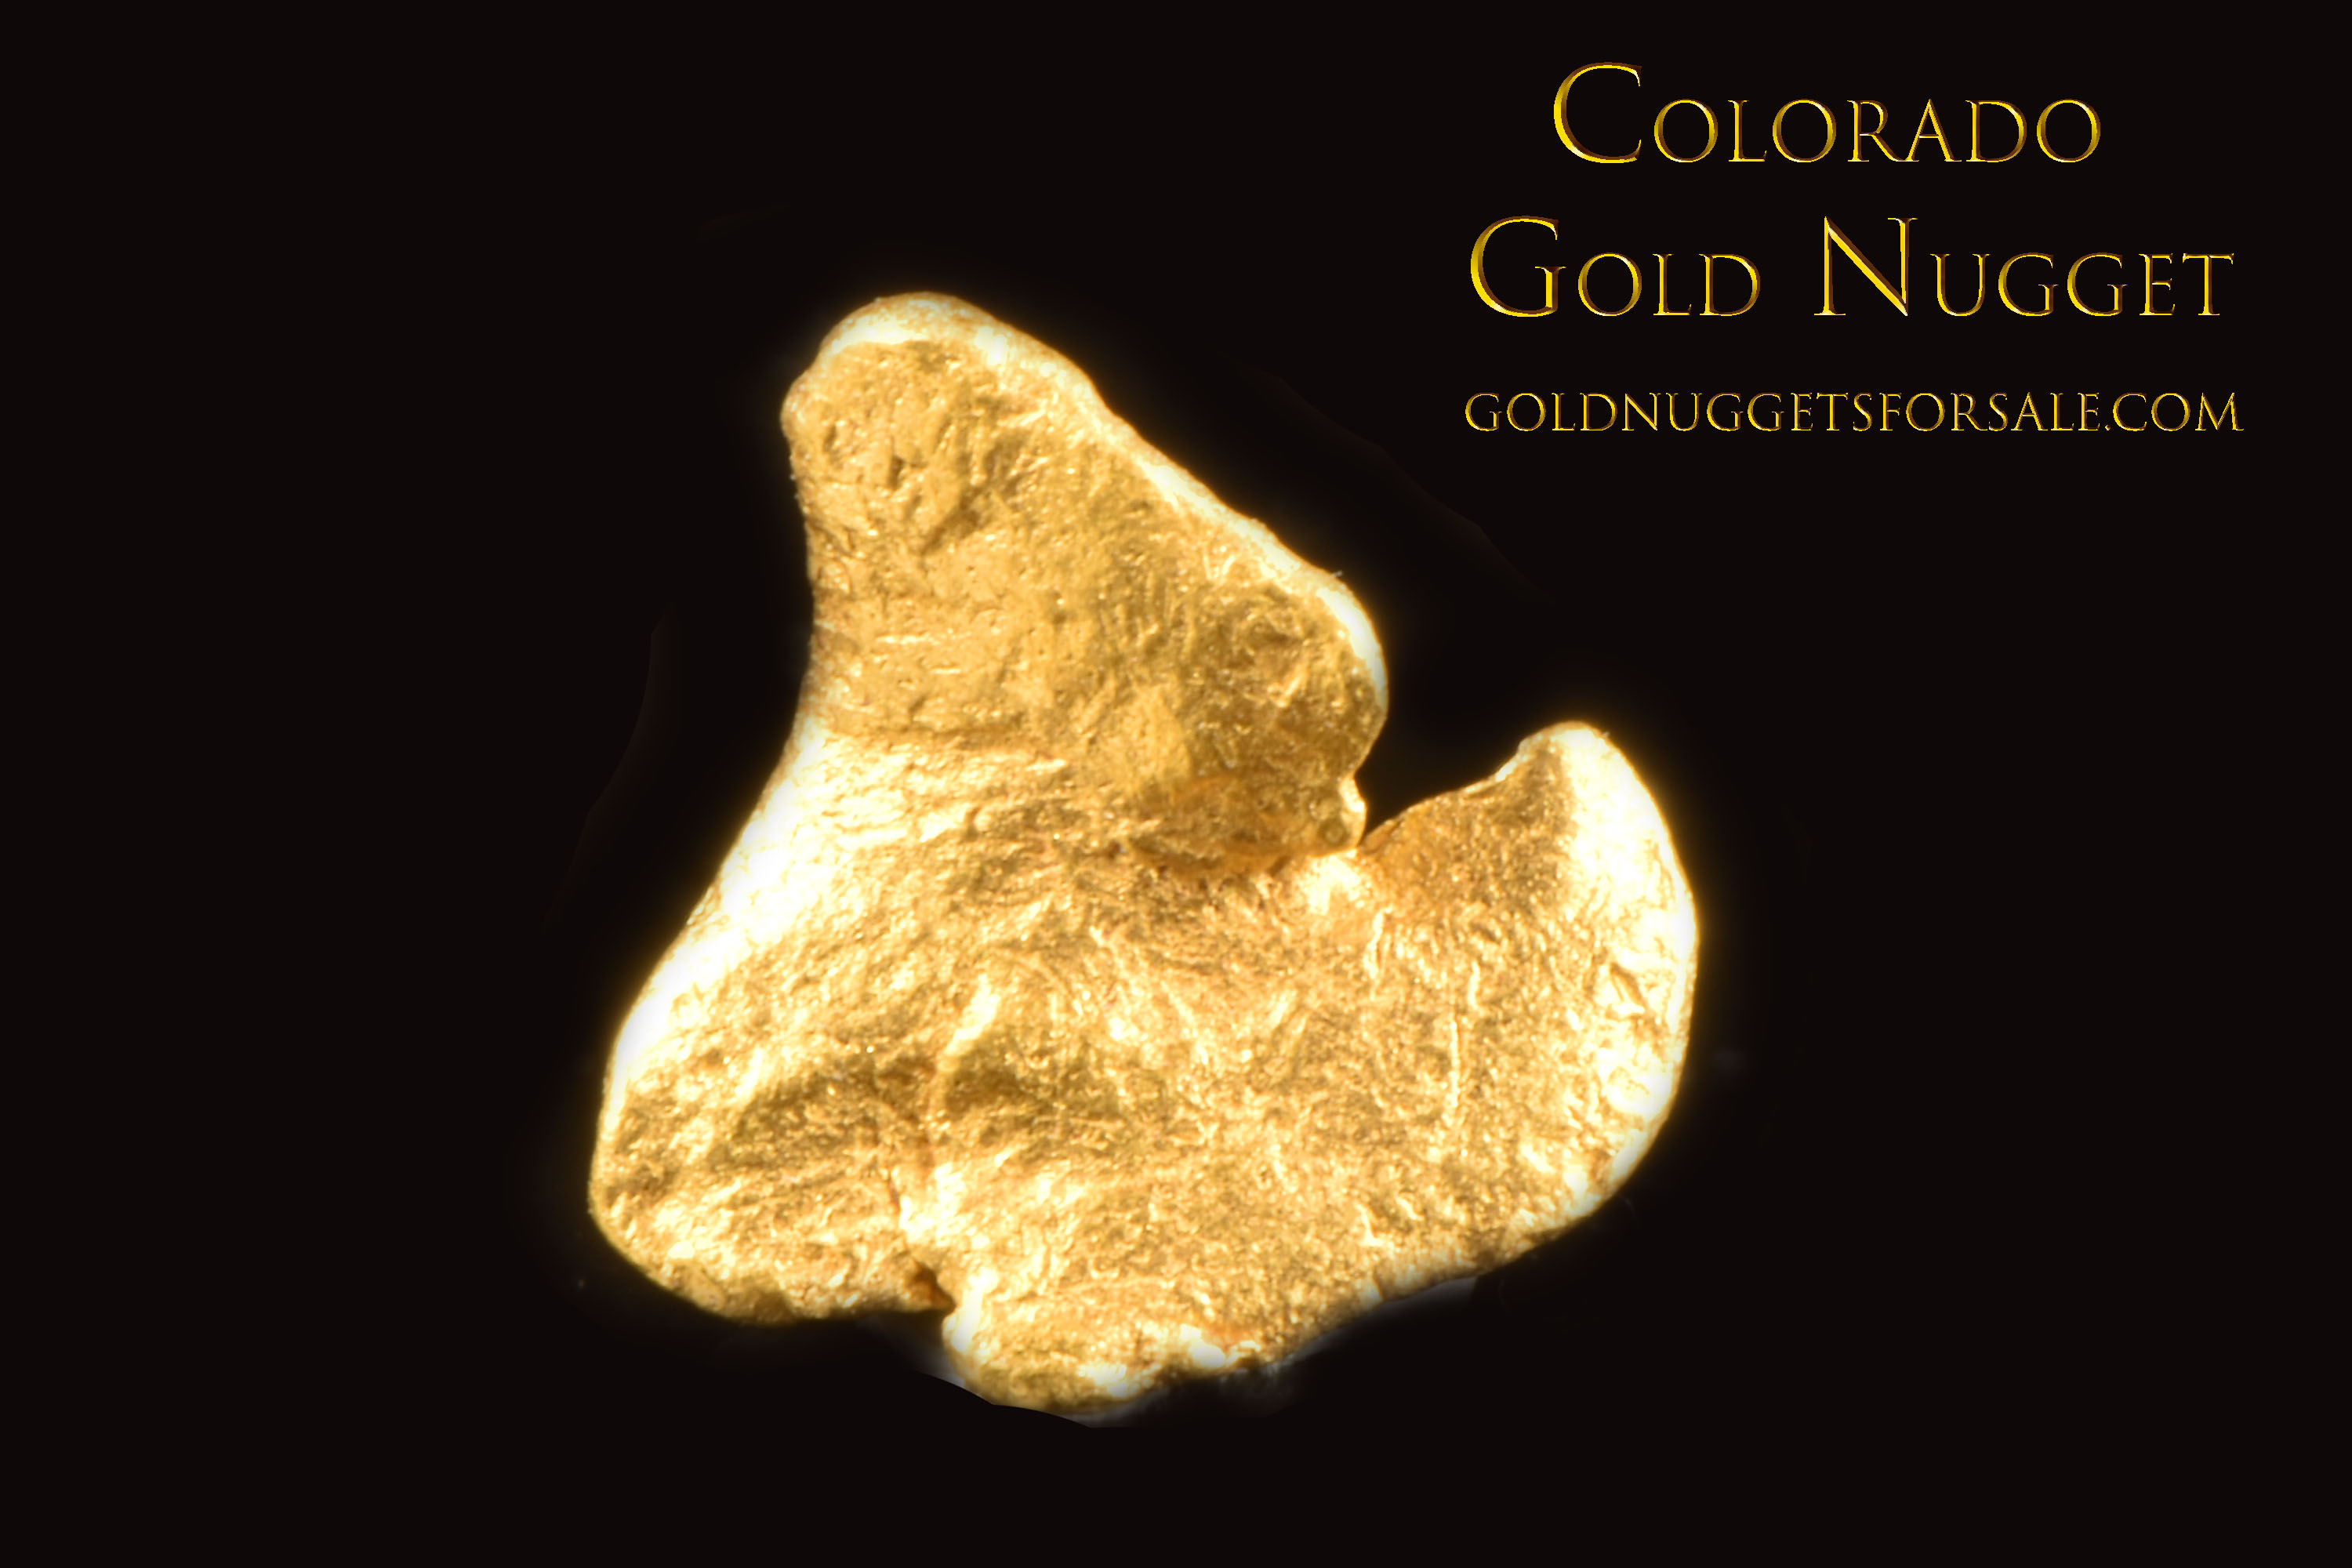 Colorado Gold Nugget - Intricate Shape and Great Price